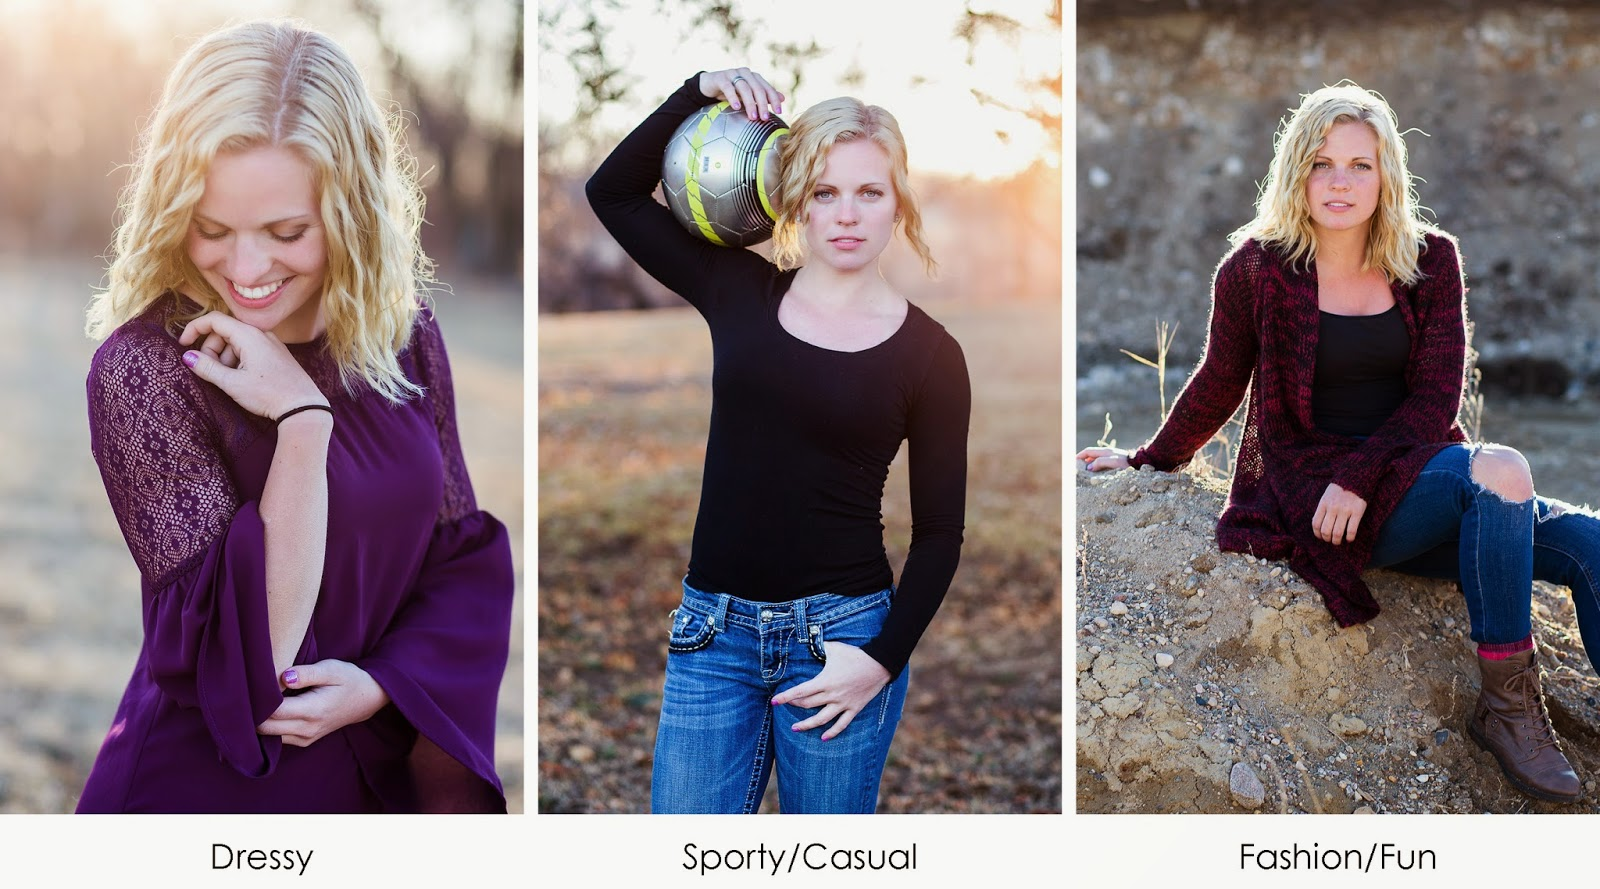 Detroit Lakes Area High School Senior Photographer | Getting the most out of your session